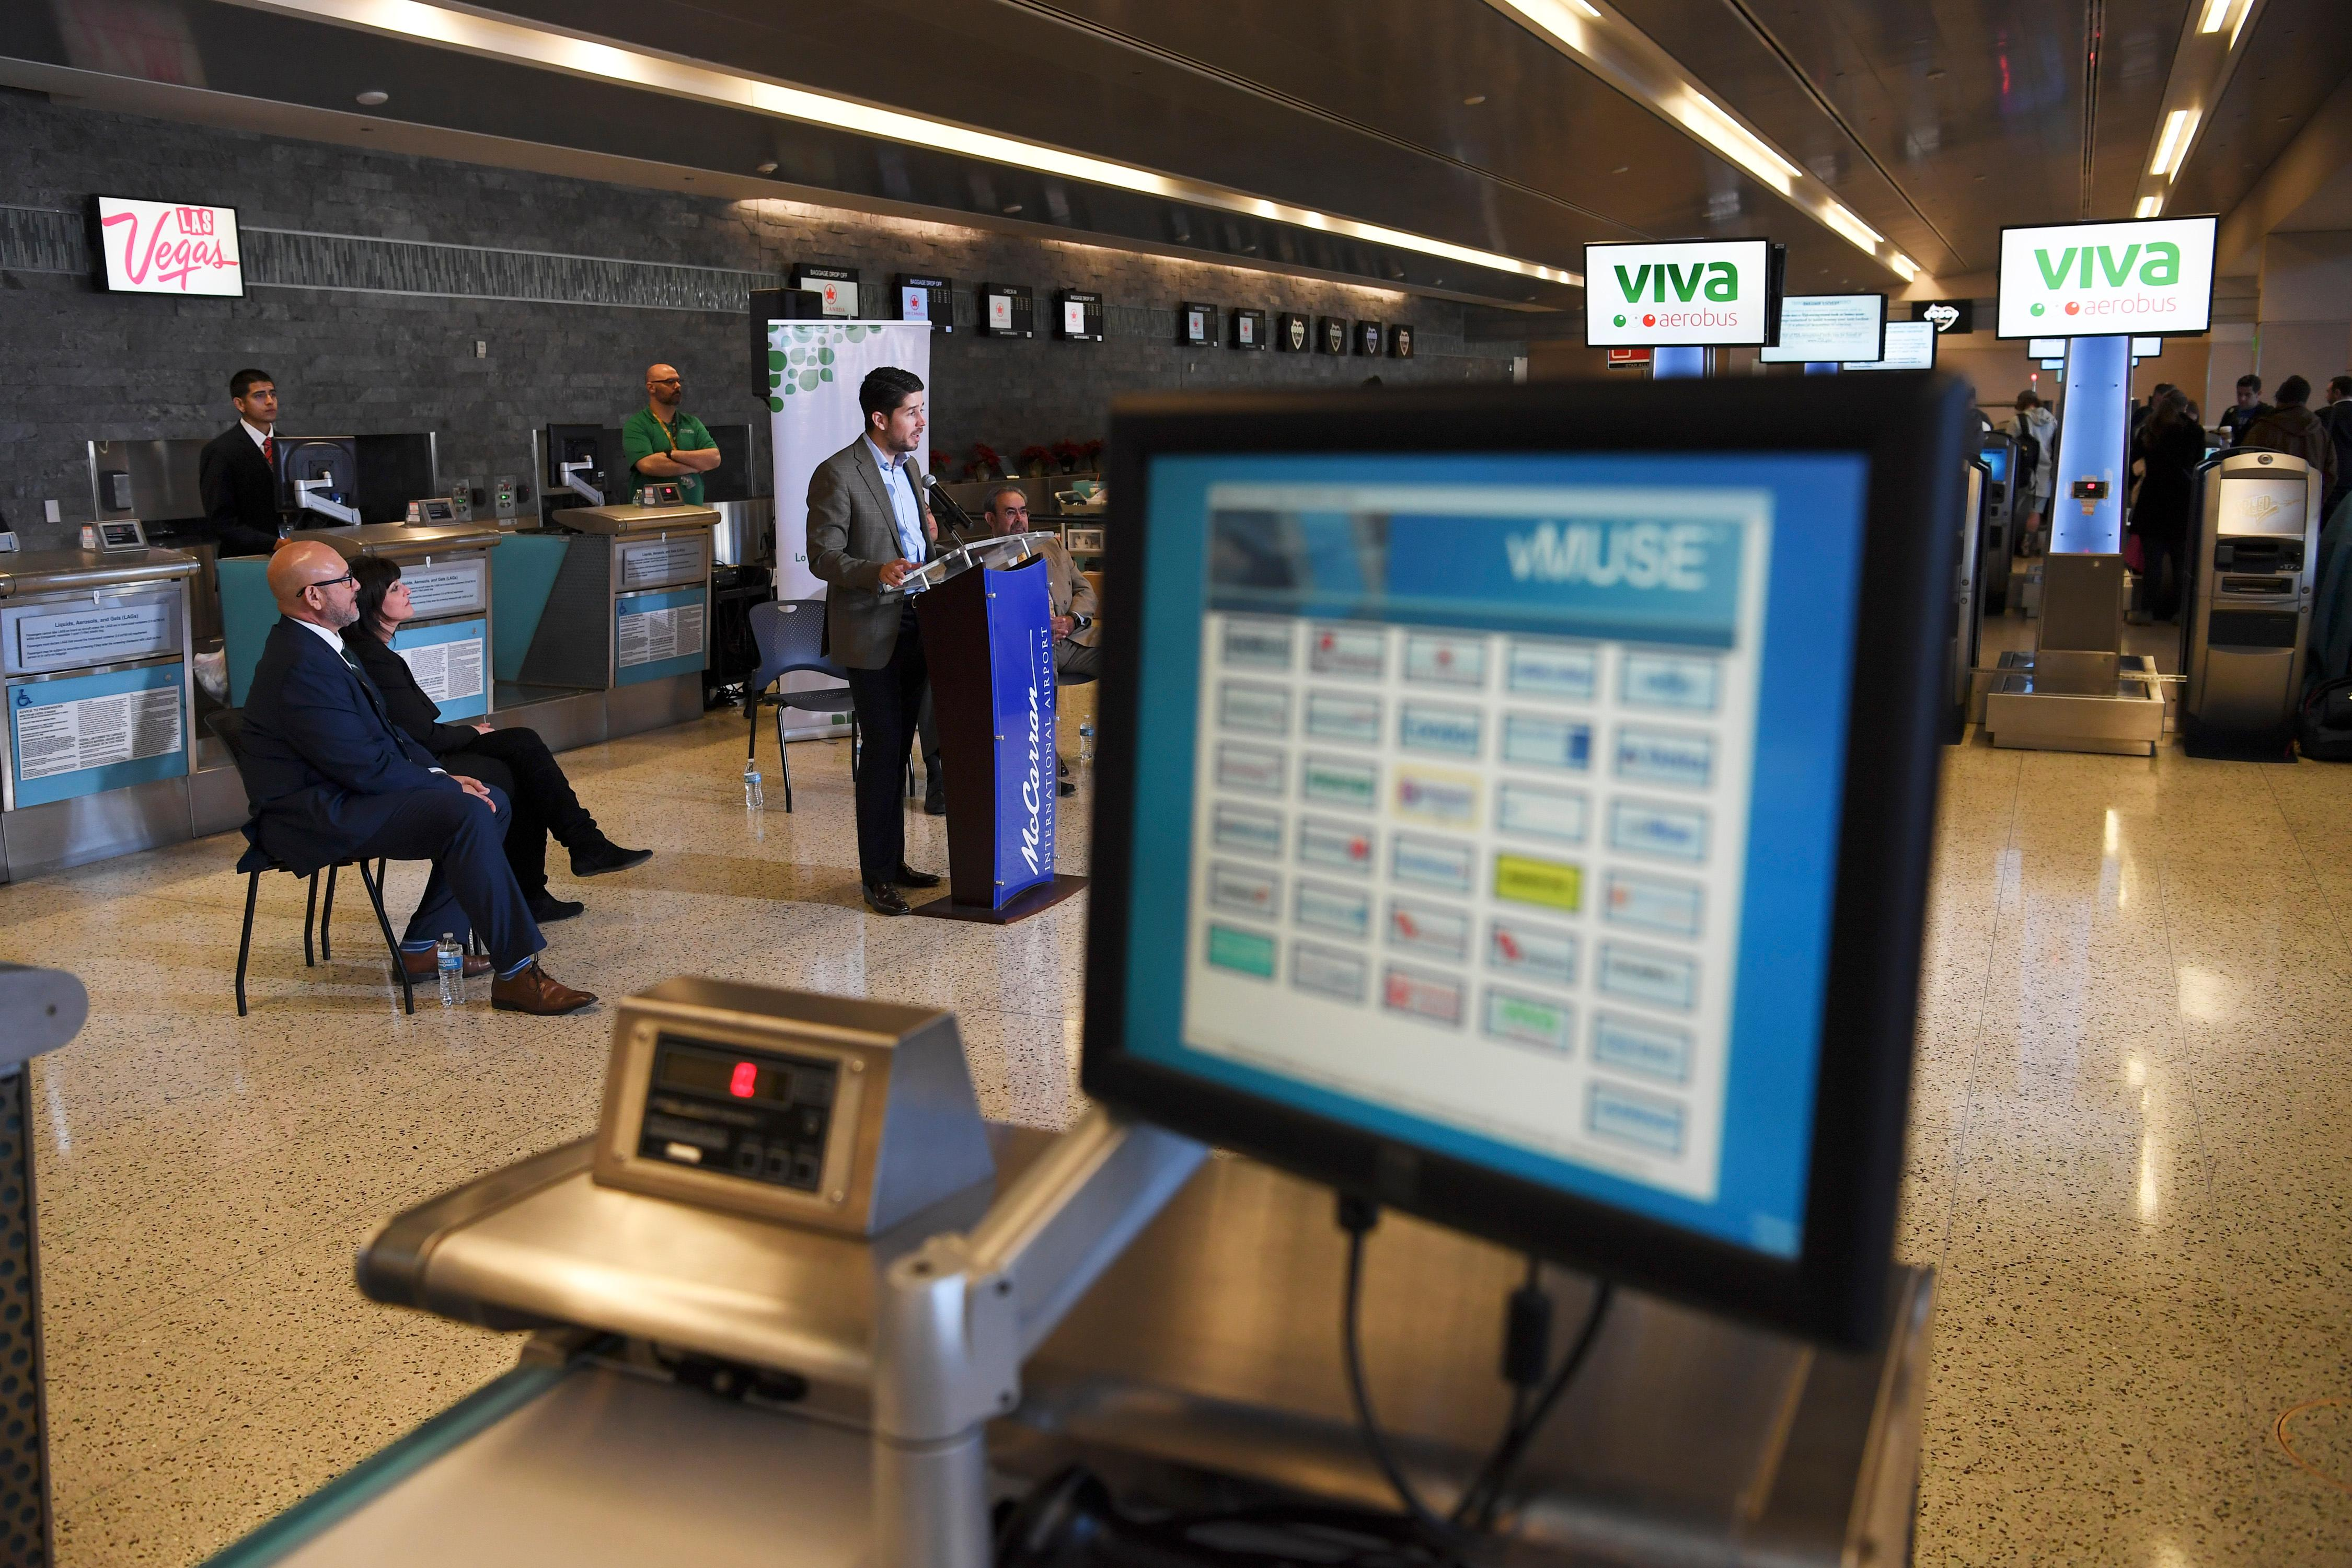 General Director of Viva Aerobus Juan Carlos Zuazua speaks during a news conference at McCarran International Airport to announce new Viva Aerobus service between Las Vegas and Mexico City Friday, December 15, 2017. CREDIT: Sam Morris/Las Vegas News Bureau